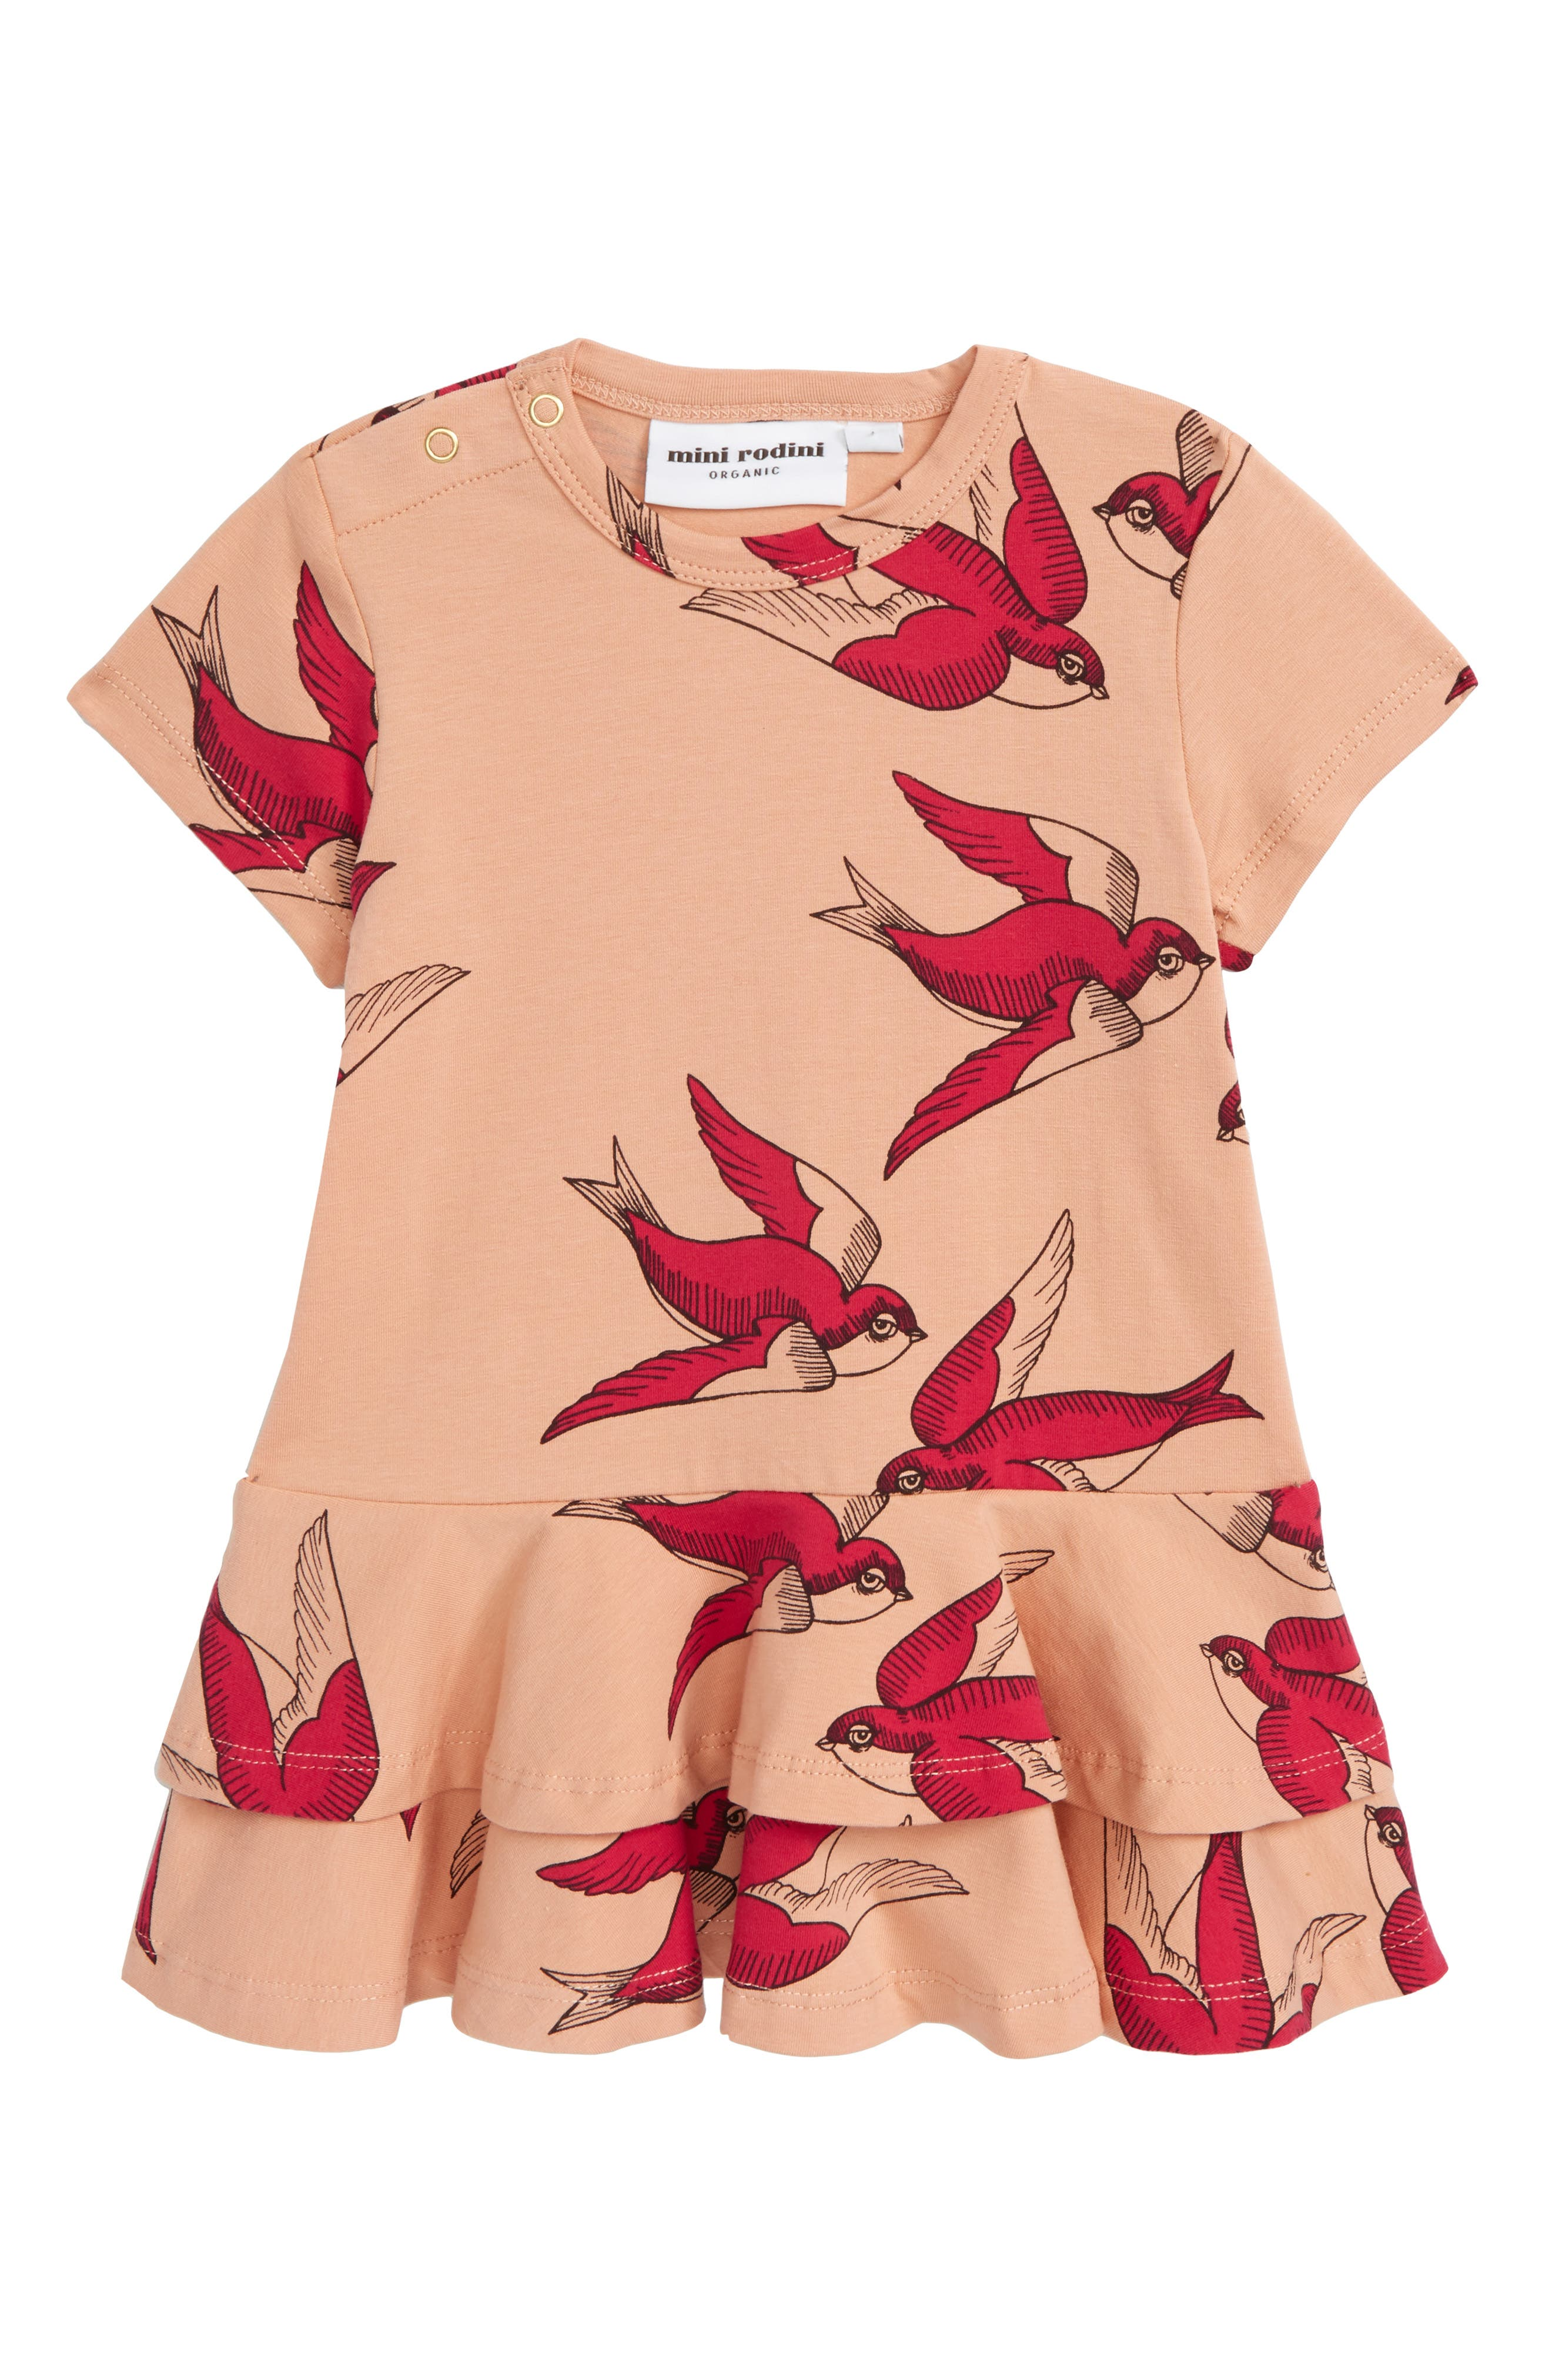 Mini Rodini Swallows Frill Dress (Baby Girls)